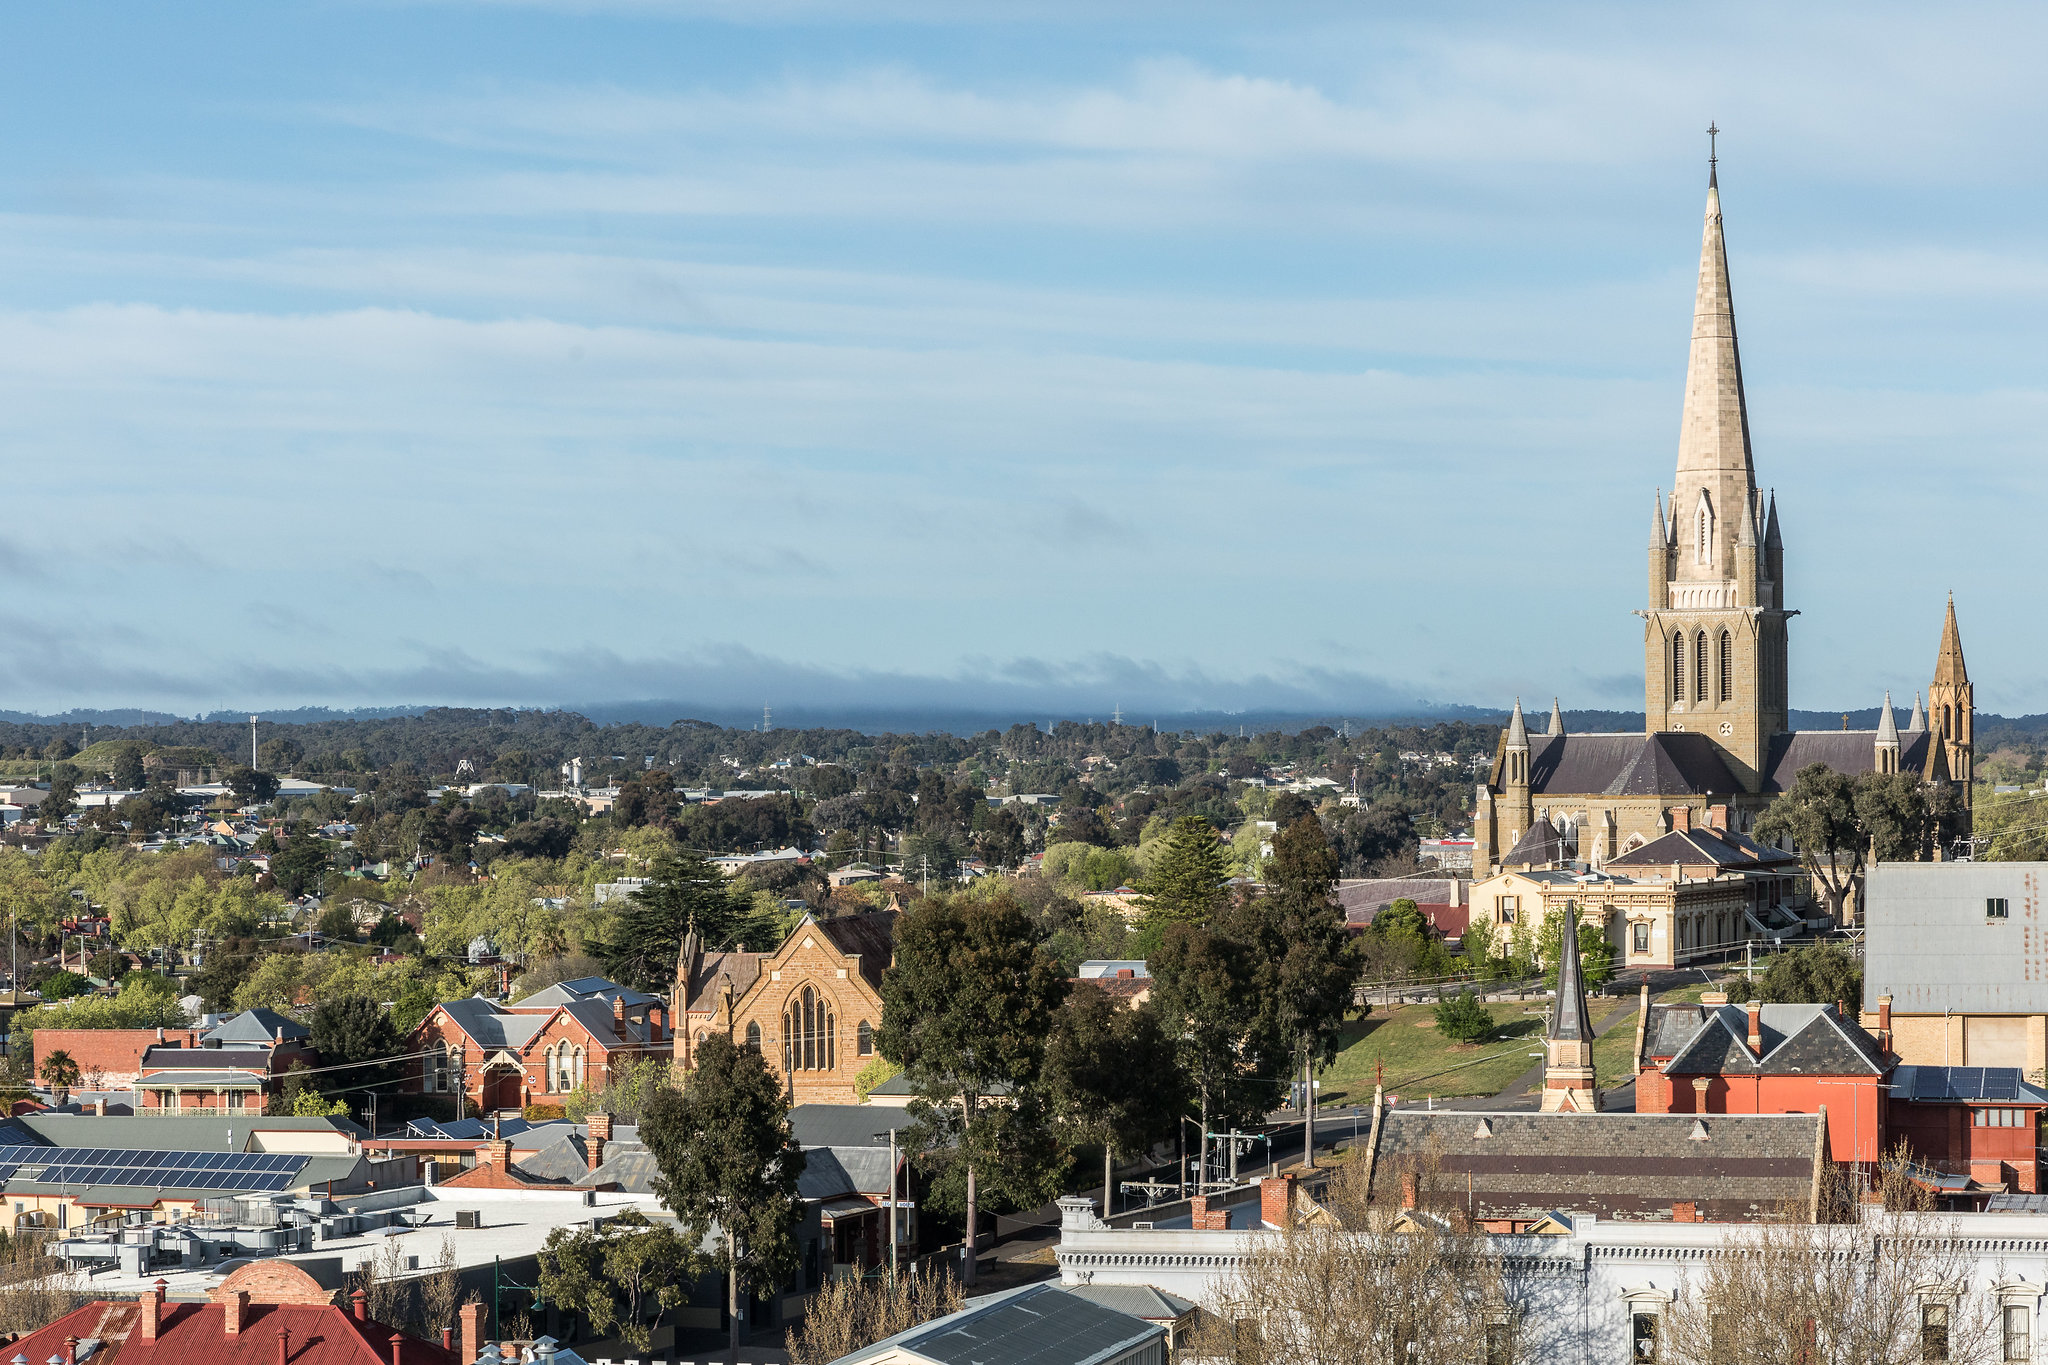 View from the top of the Poppet Head (Sacred Heart Cathedral in view) . Photo Credit: Chris Jack Photography.